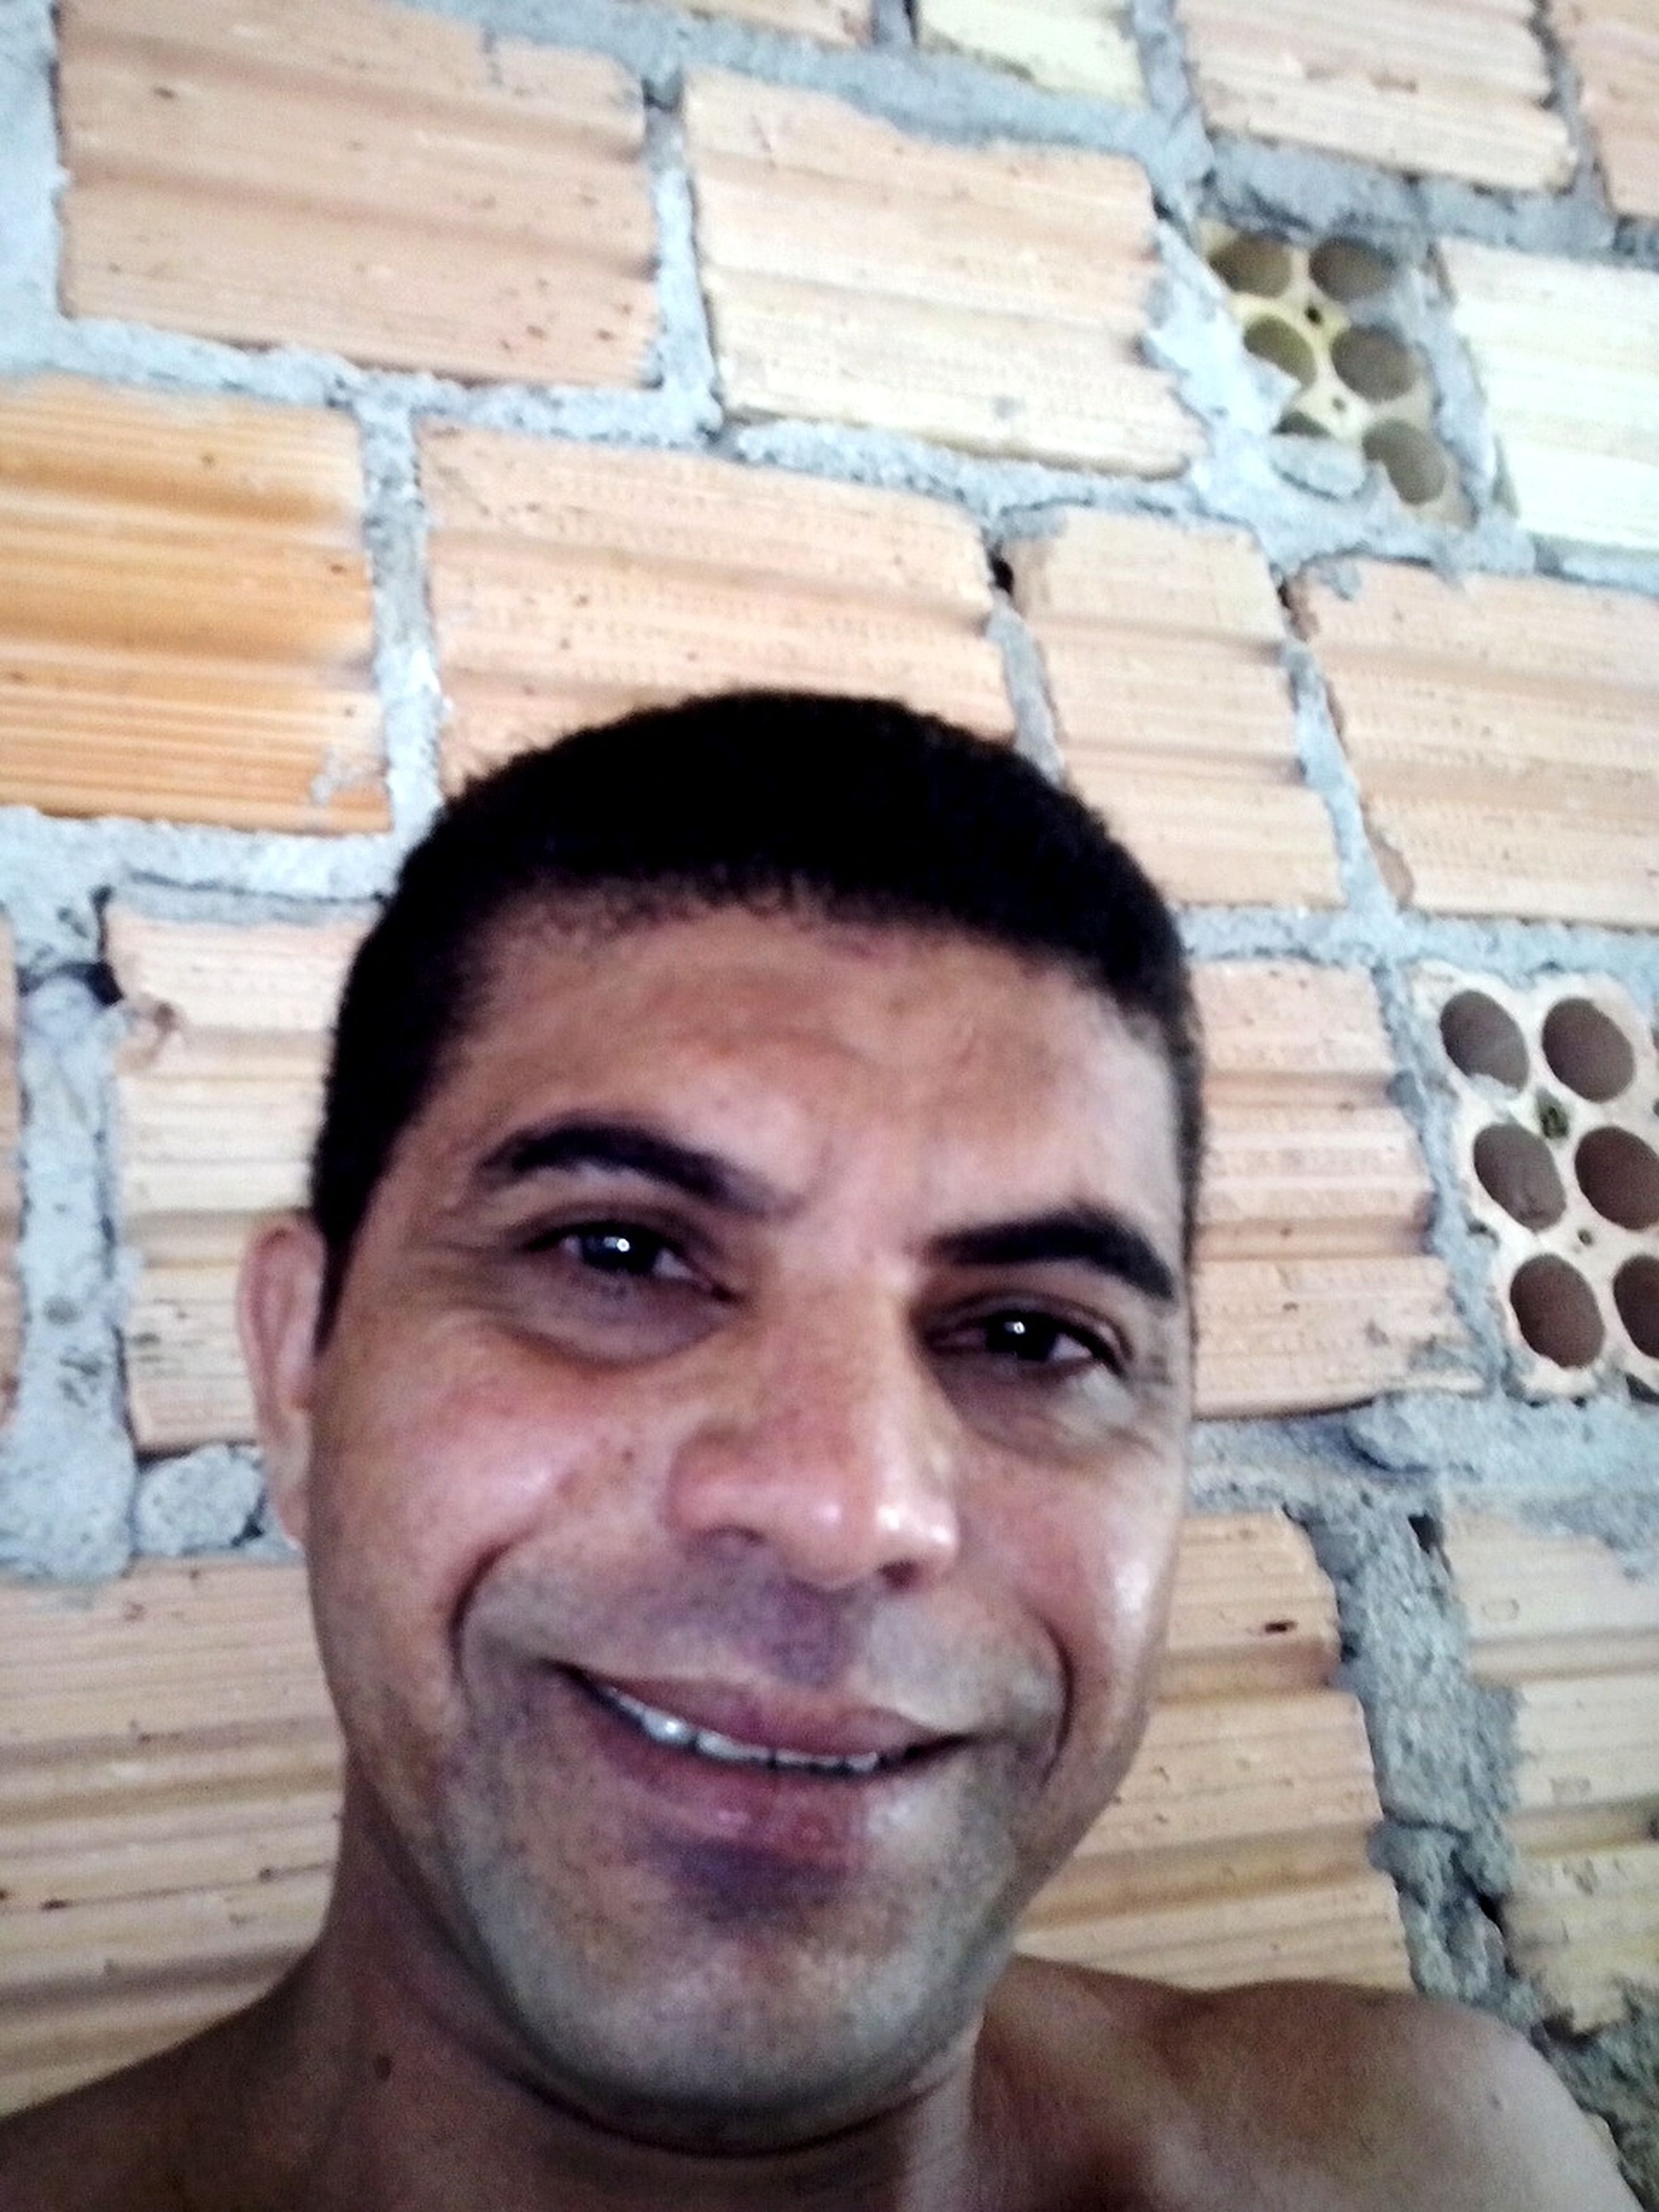 looking at camera, portrait, close-up, front view, wall - building feature, person, wood - material, headshot, indoors, lifestyles, wooden, young men, smiling, day, young adult, focus on foreground, built structure, architecture